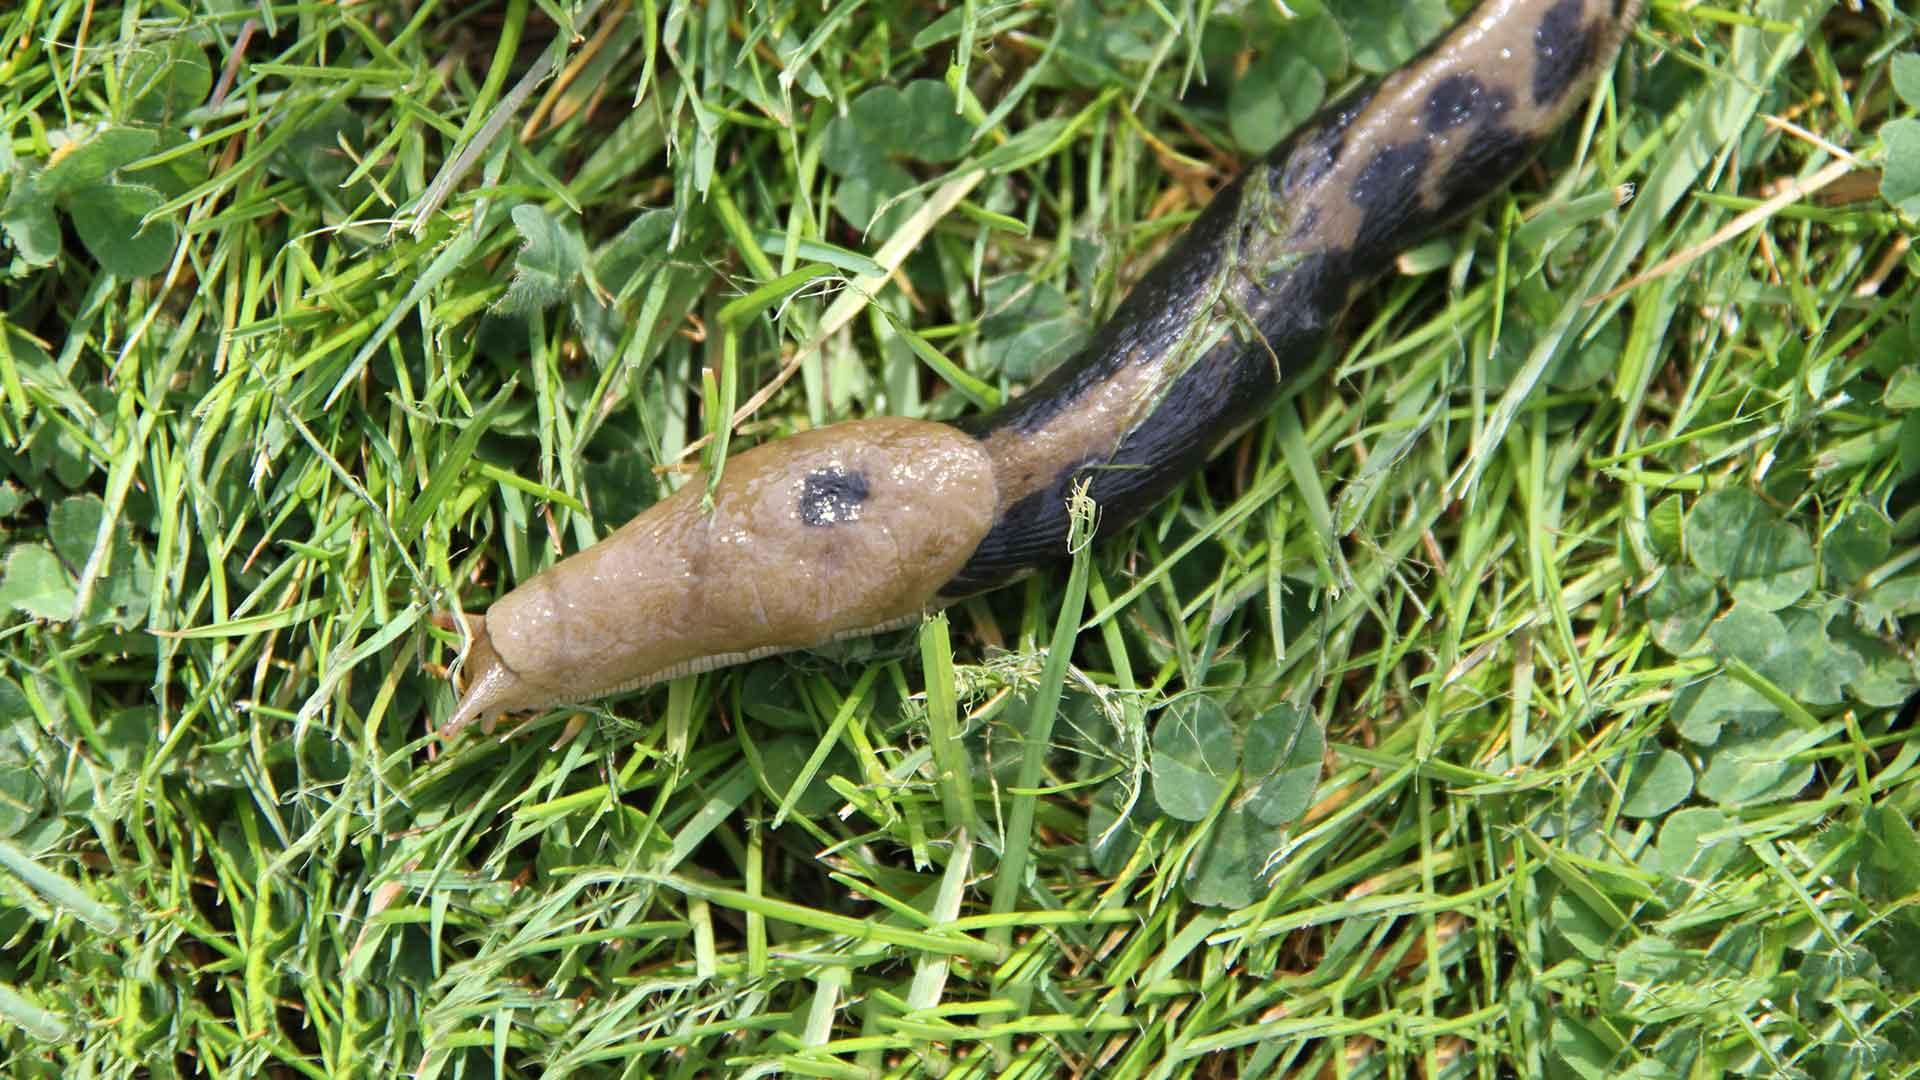 Close up of a slug in grass